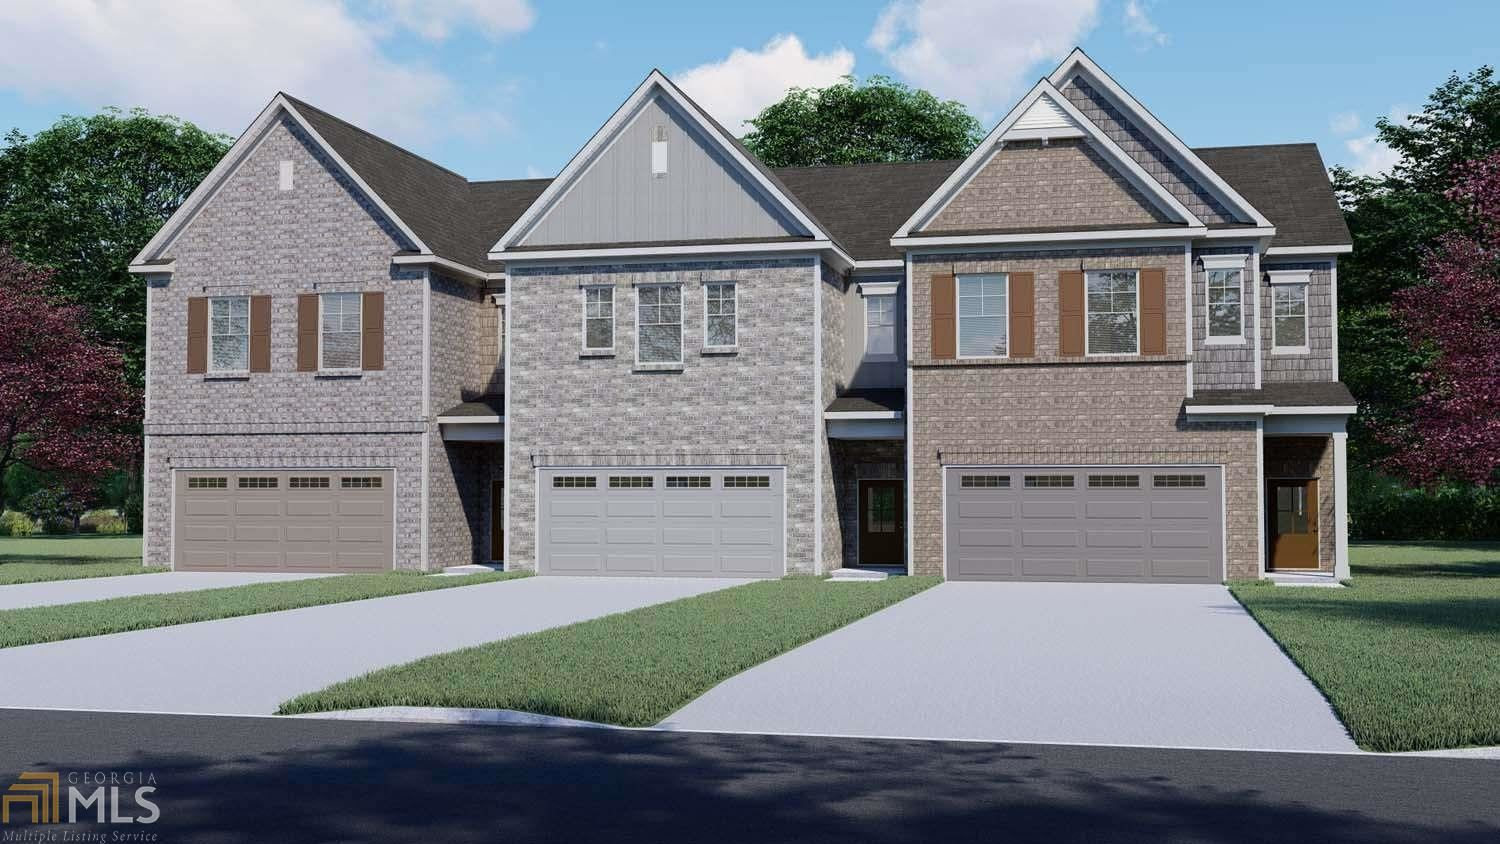 2877 Pearl Ridge Trce, Buford, GA 30519 - MLS#: 8850521